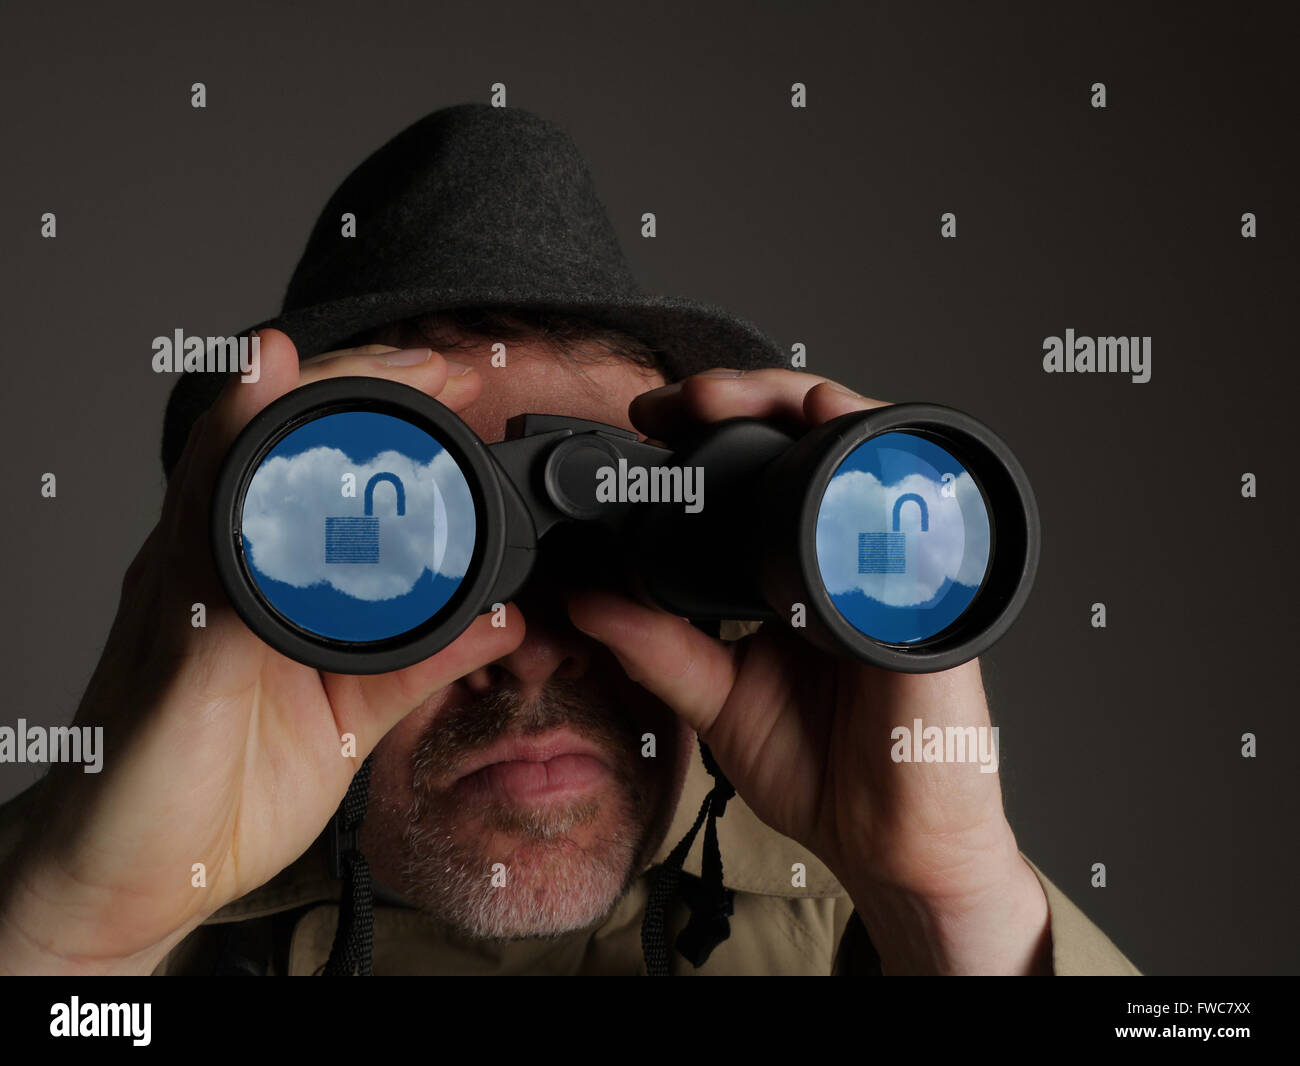 Photograph of a man in trench coat and hat looking through binoculars with reflected cloud symbols in the lenses. - Stock Image